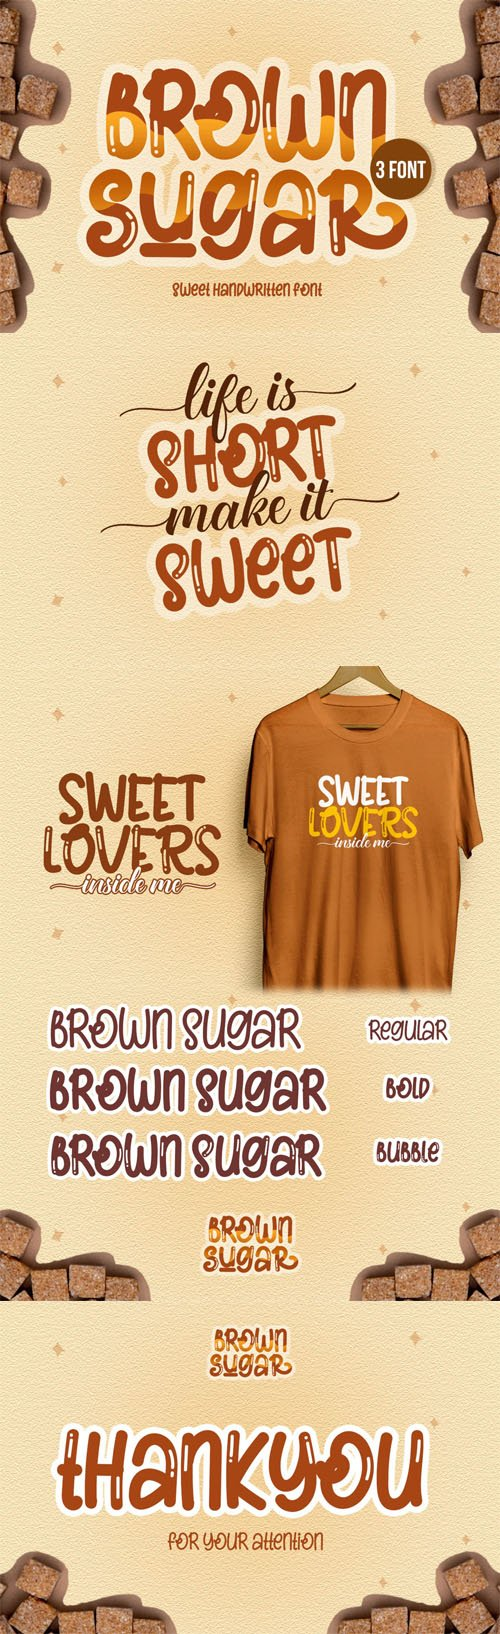 Brown Sugar - Sweet Handwritten Font [2-Weights]